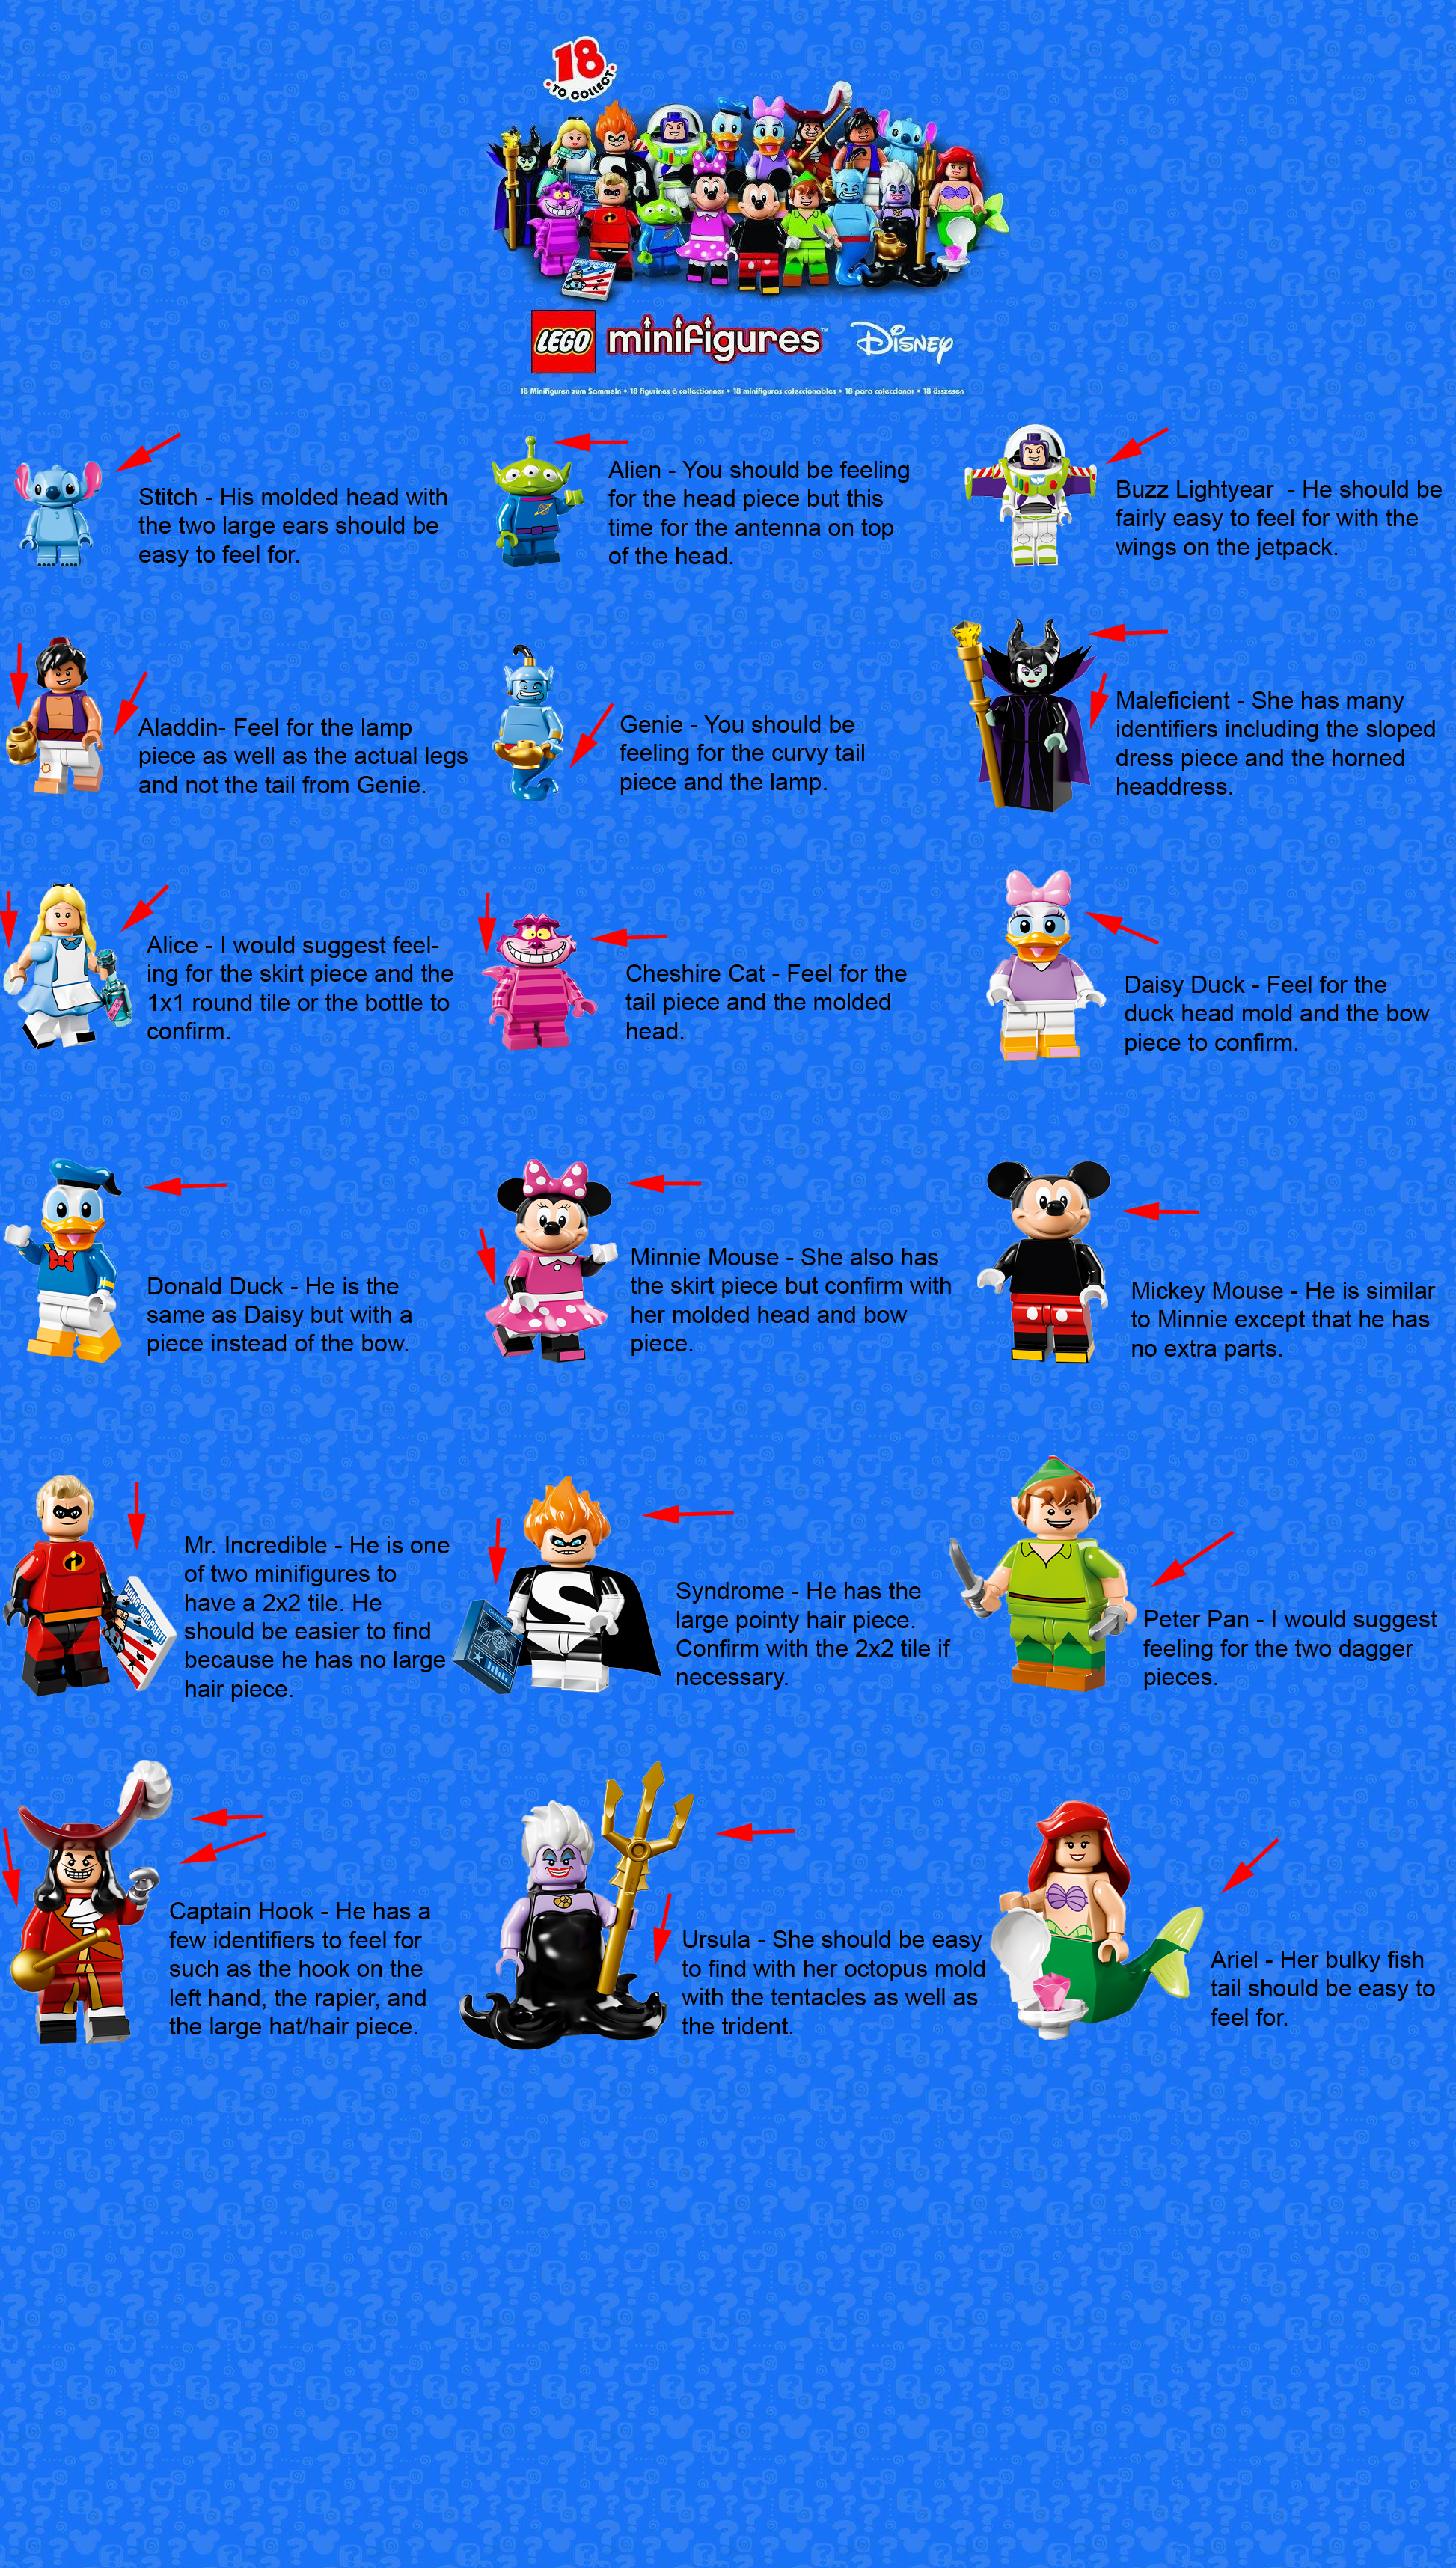 The Lego Disney Collectible Minifigures 71012 Have